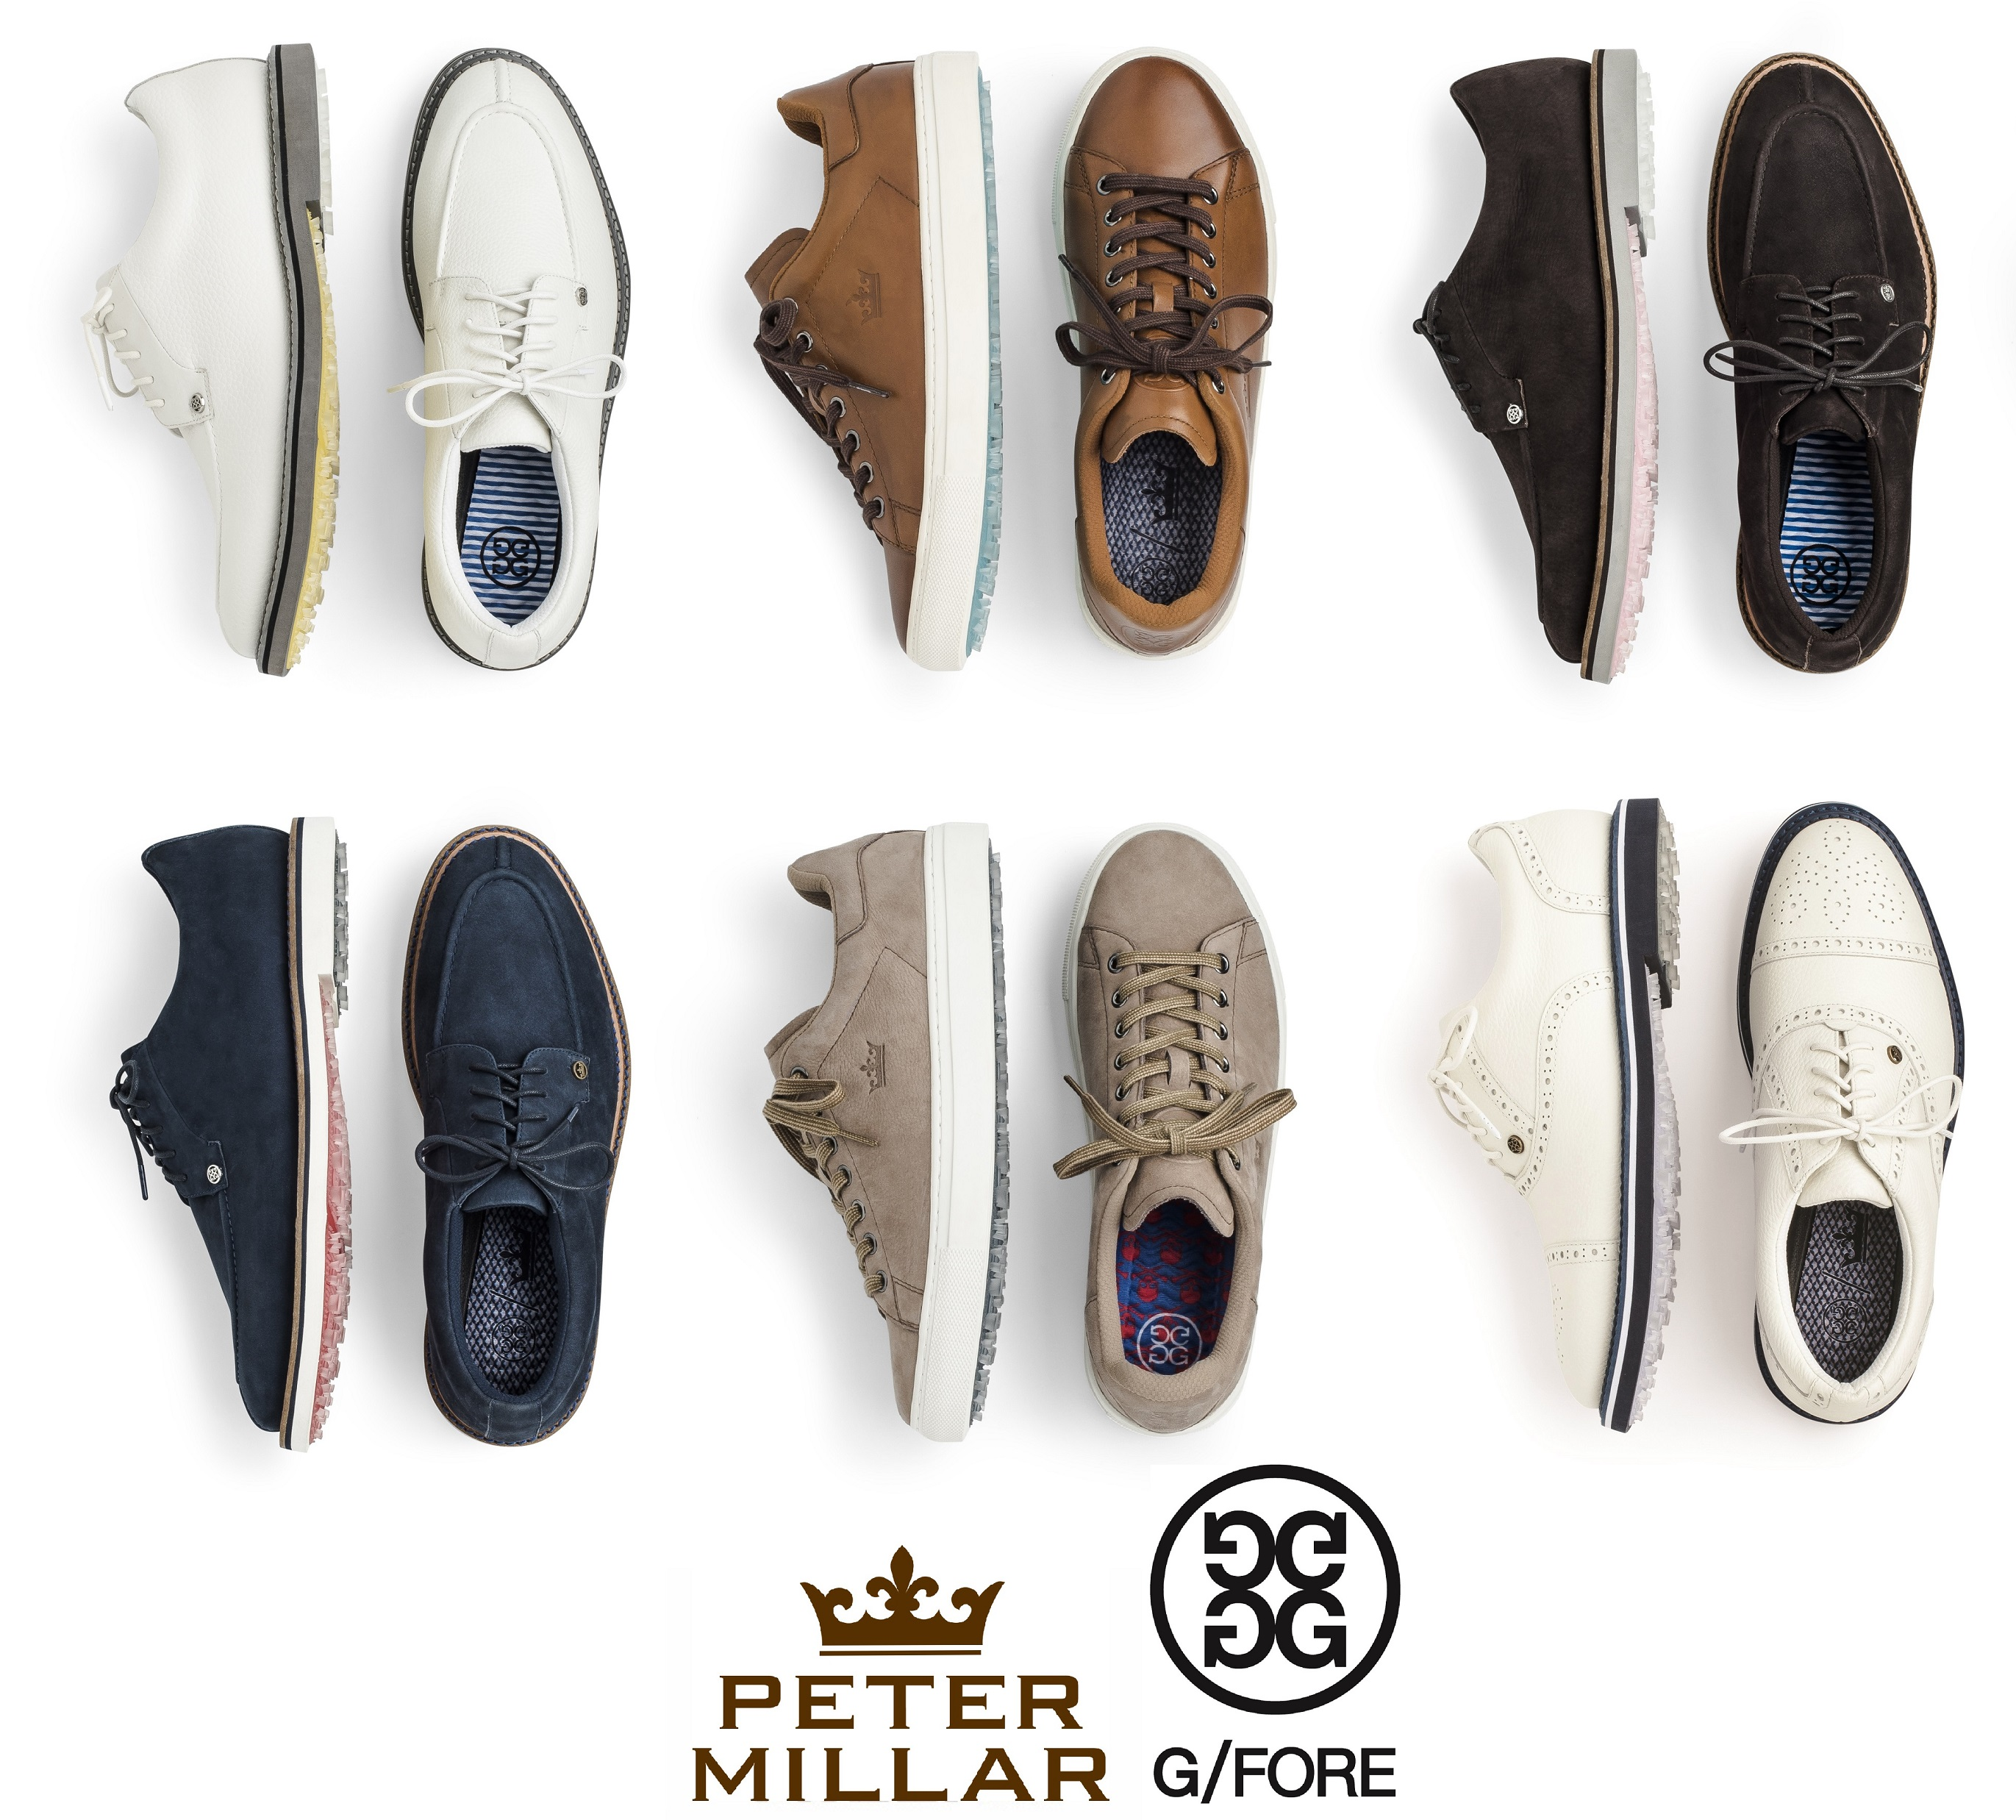 G/Fore and Peter Millar collaborate on